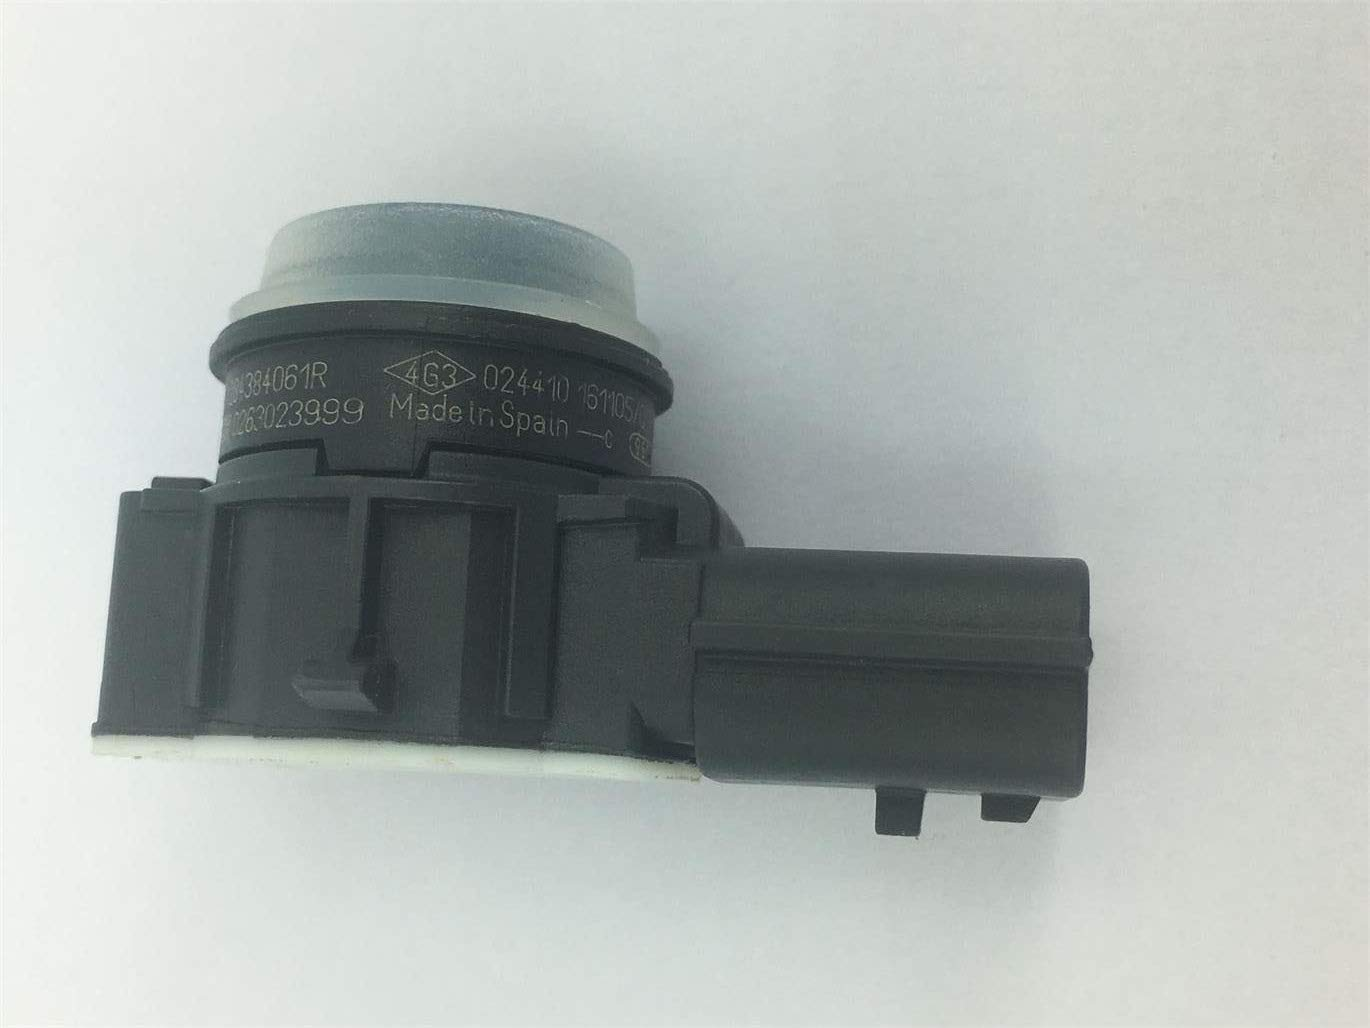 284384061R 0263023999 OEM genuinParking Sensor de Fit for Renault Espace 2015 Hass Foshan Auto Parts